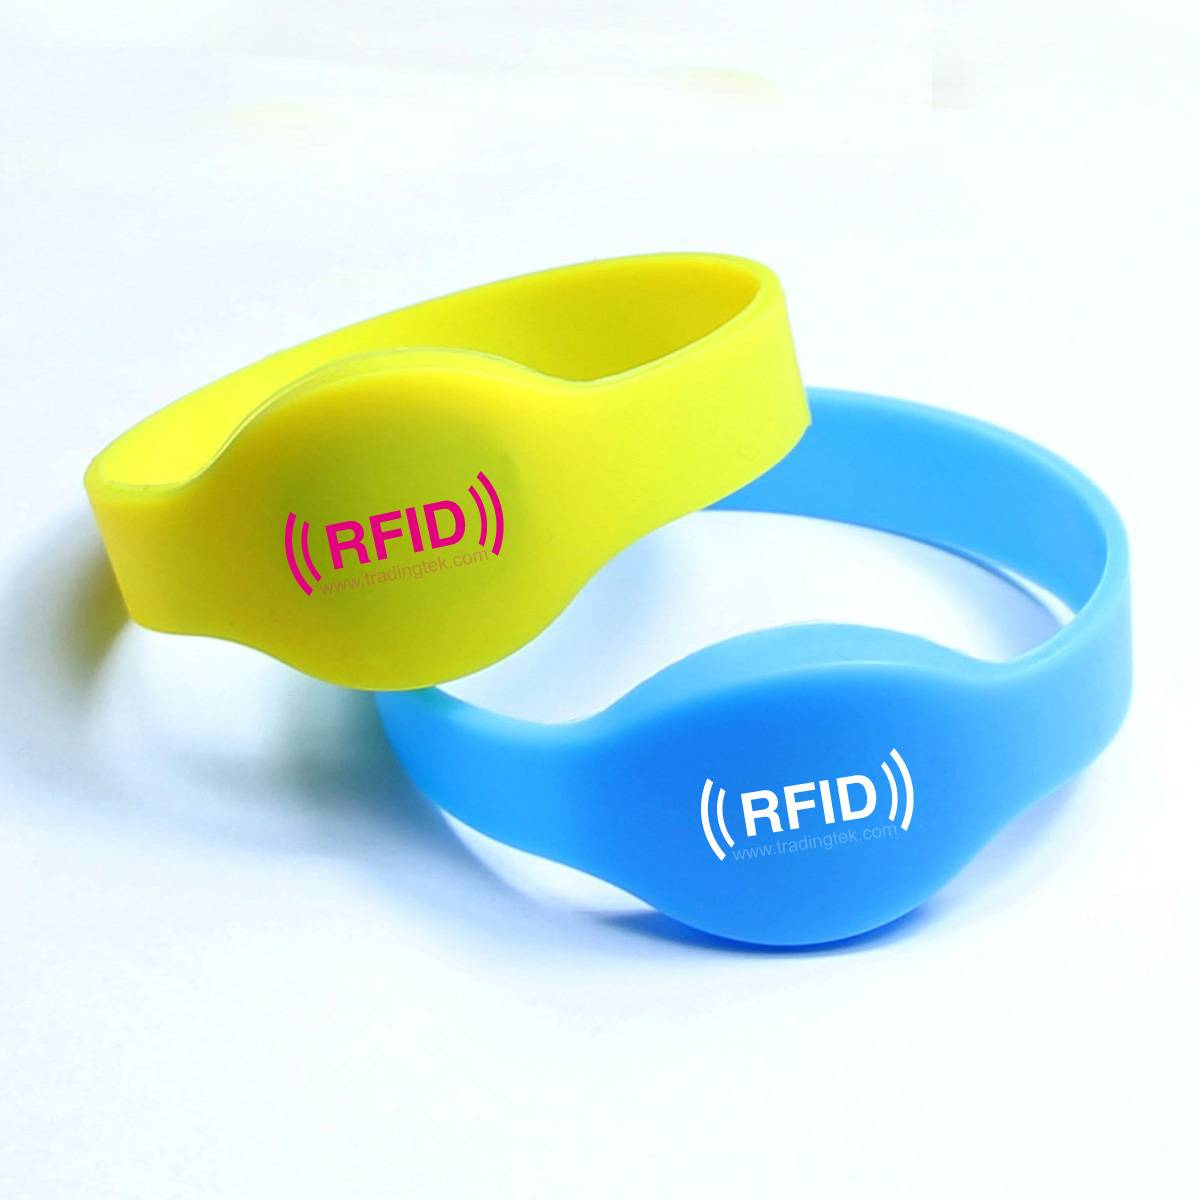 is shop rfid logo system silicone a technologies wristband of bracelet solution rfidsolutionglobal siliccone iot integration global nfc printing silicon provider